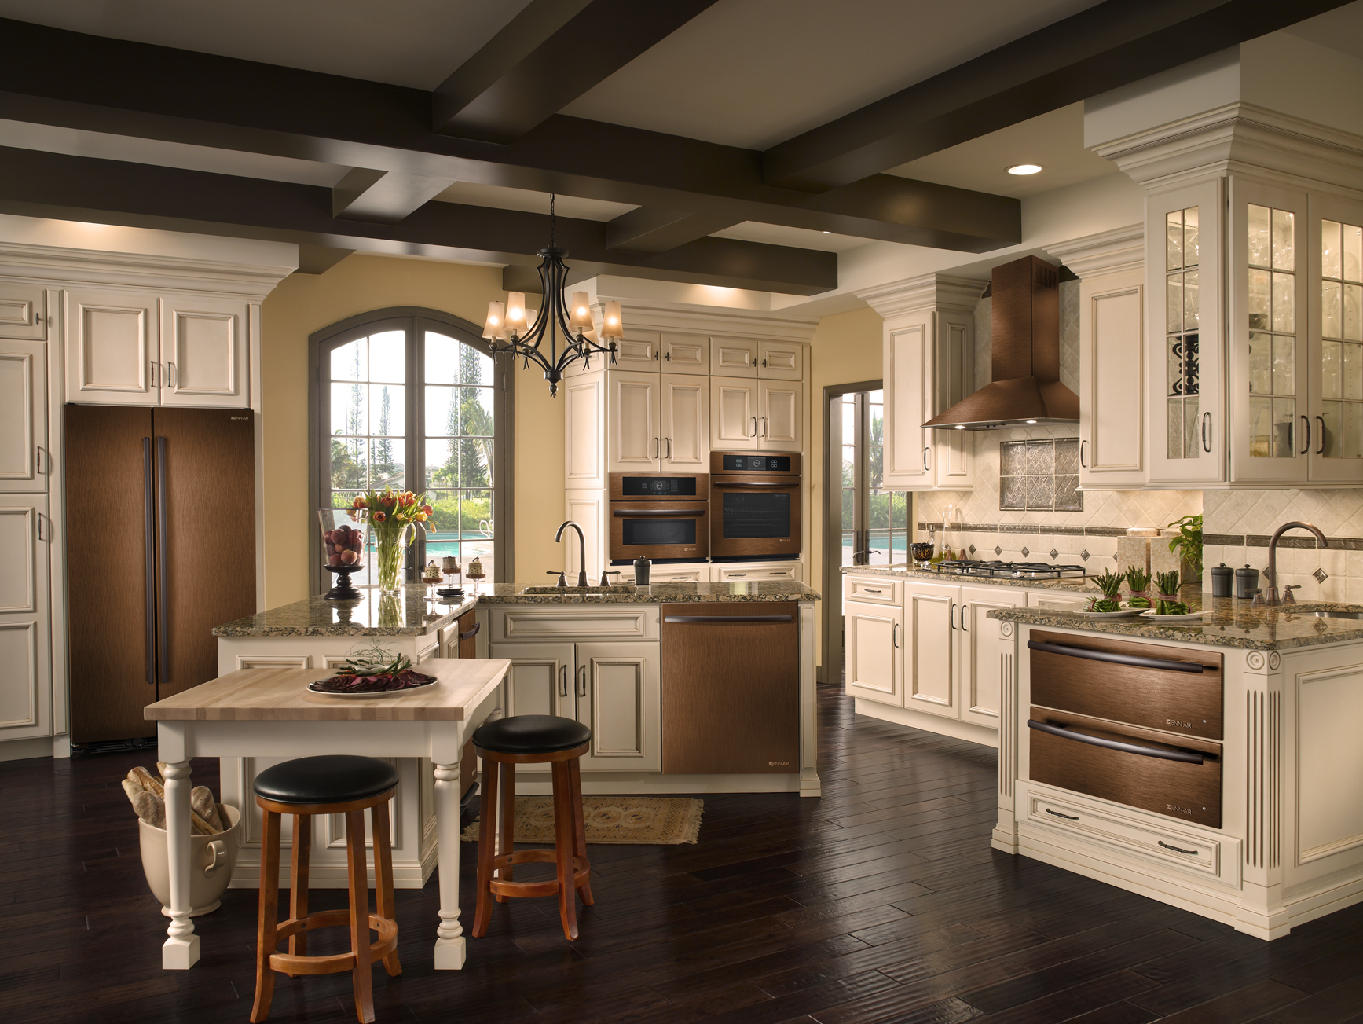 Oil Rubbed Bronze Appliances: Most Stylish Kitchen Appliances ...